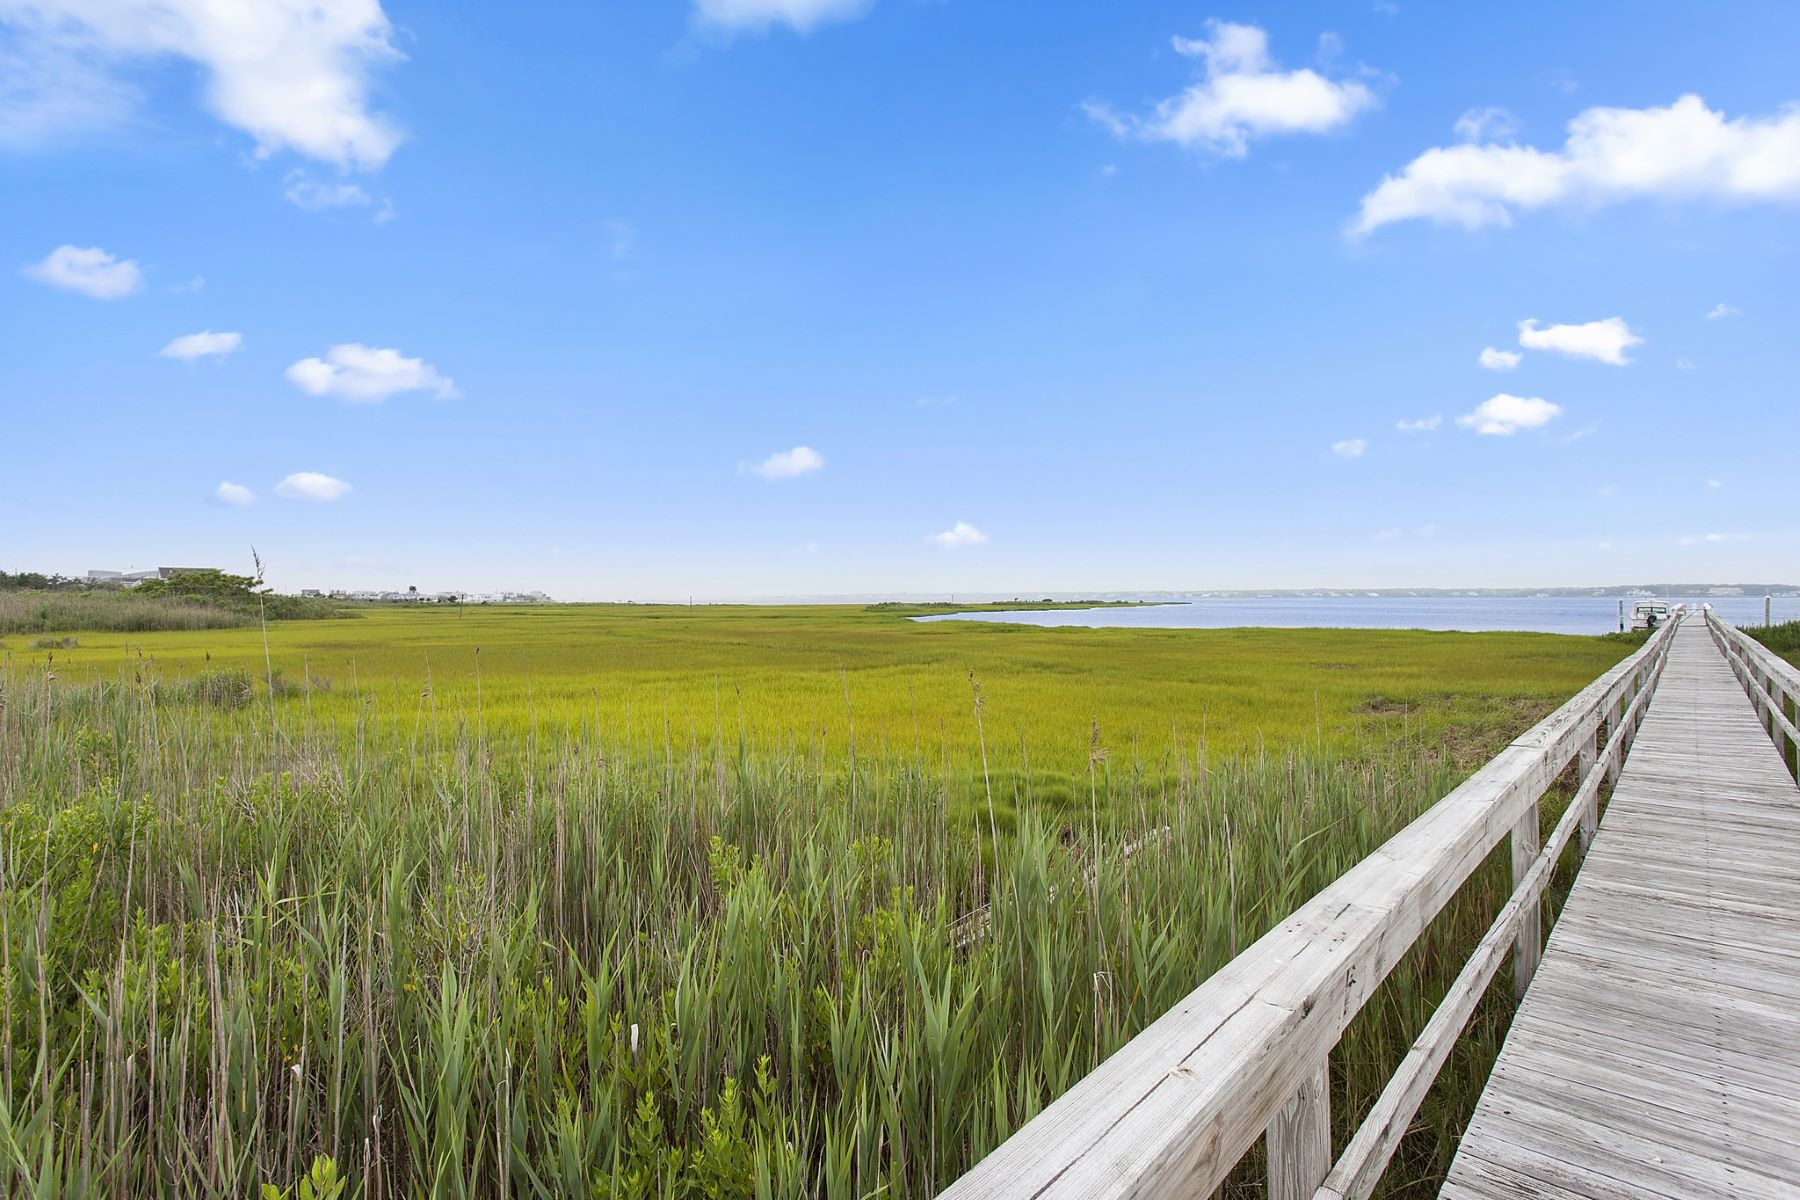 Single Family Homes for Sale at Westhampton Bch 371 Dune Rd Westhampton Beach, New York 11978 United States